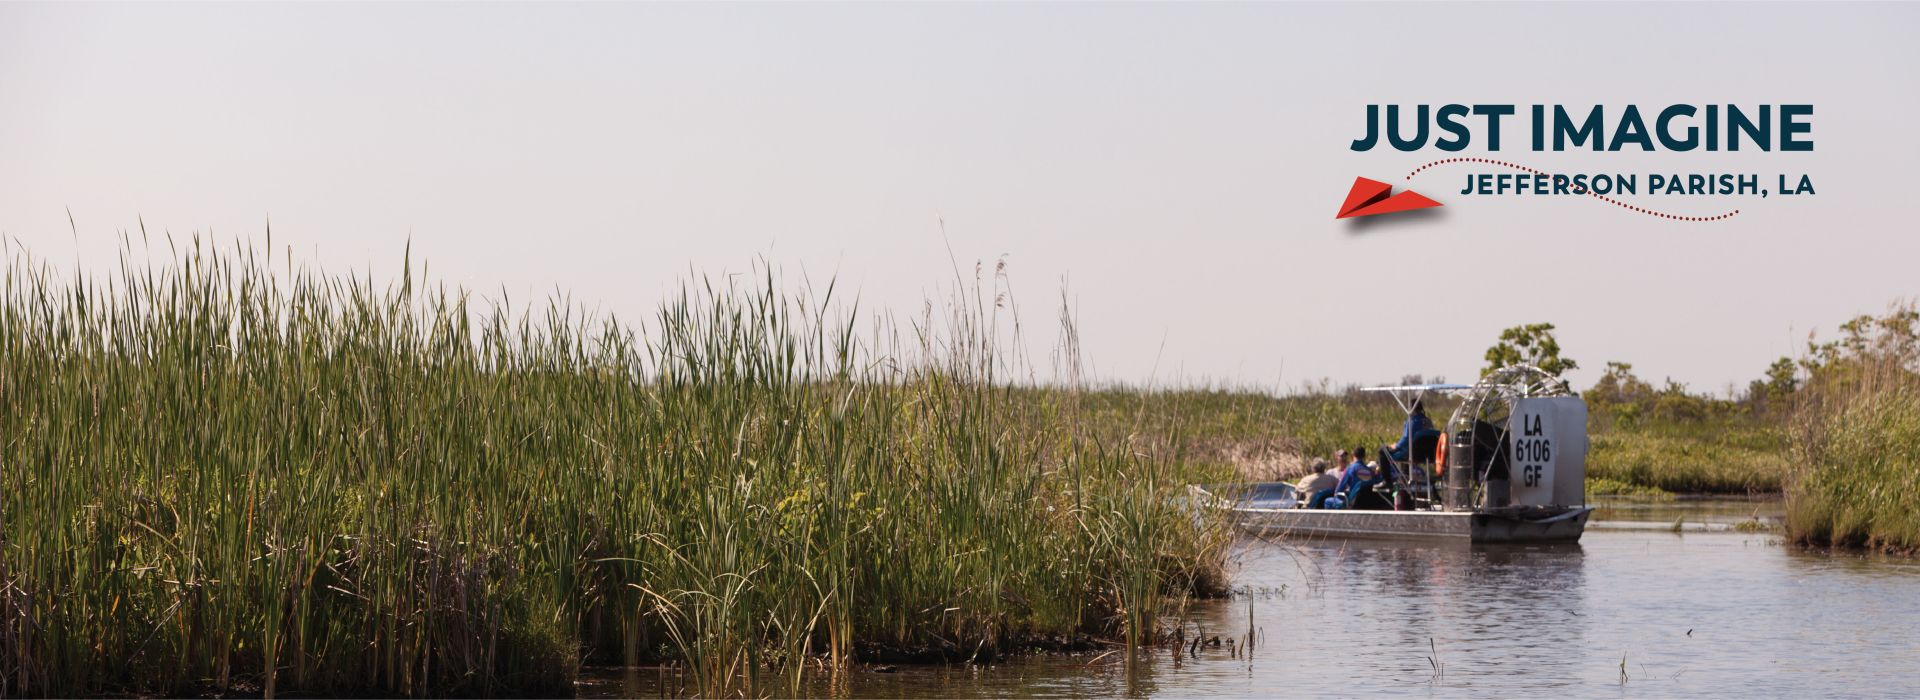 "People on an airboat during a swamp tour with the ""Just Imagine"" logo"